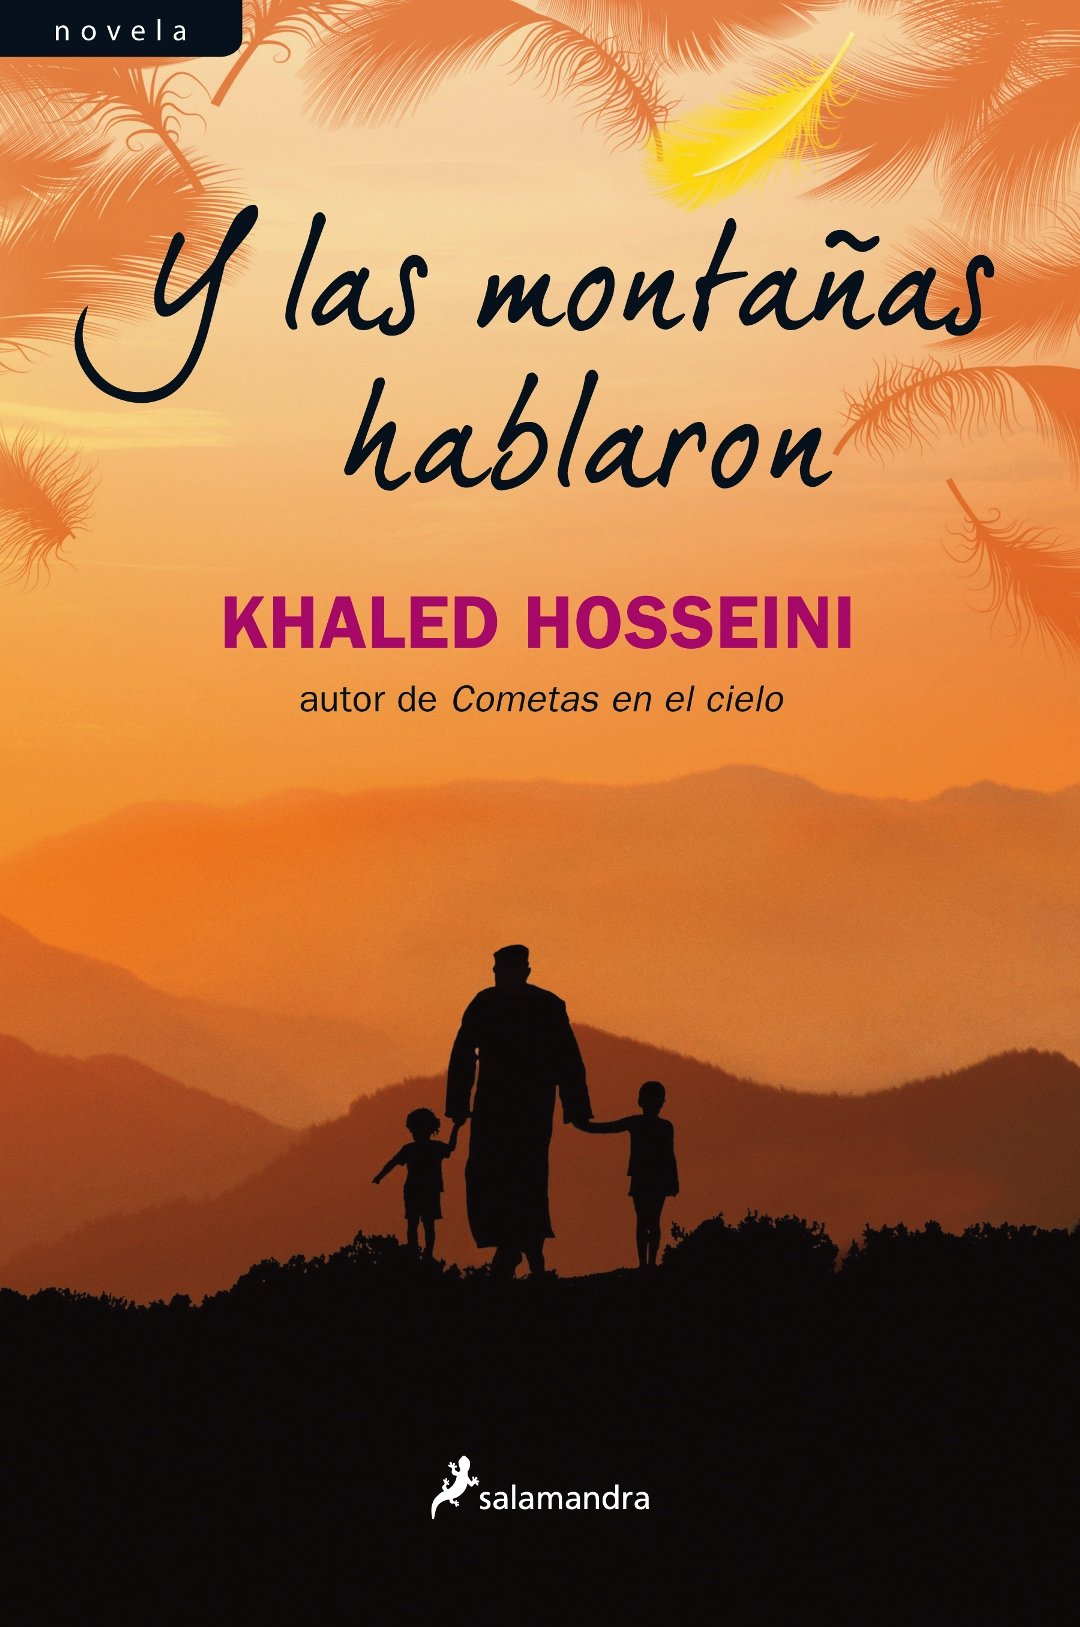 Buy Y las montañas hablaron/ And The Mountains Echoed Book Online at Low  Prices in India | Y las montañas hablaron/ And The Mountains Echoed Reviews  ...